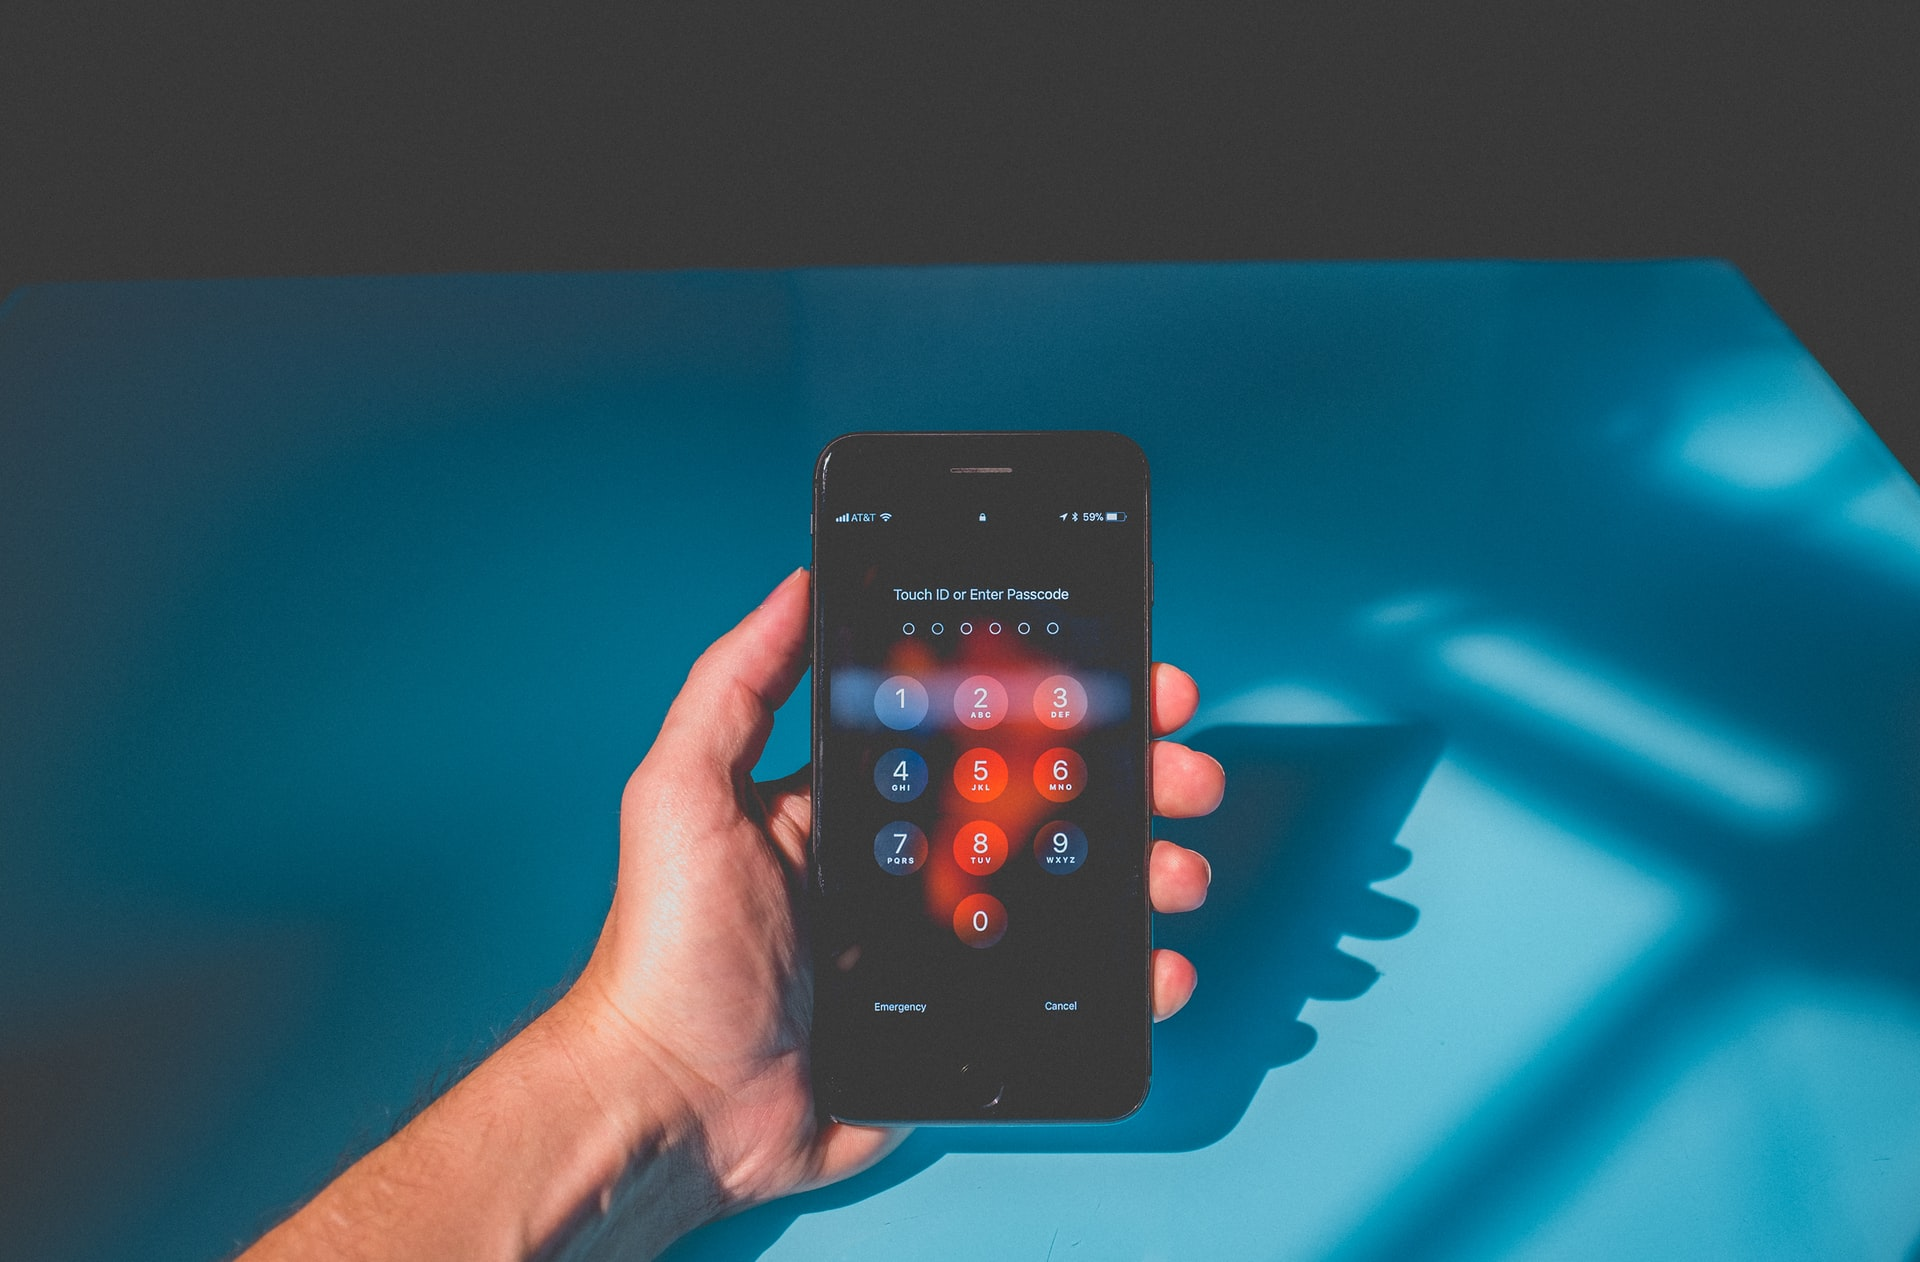 Must-have modern workplace tools to secure your organisation from data loss - hand holding a mobile phone with the passcode screen open